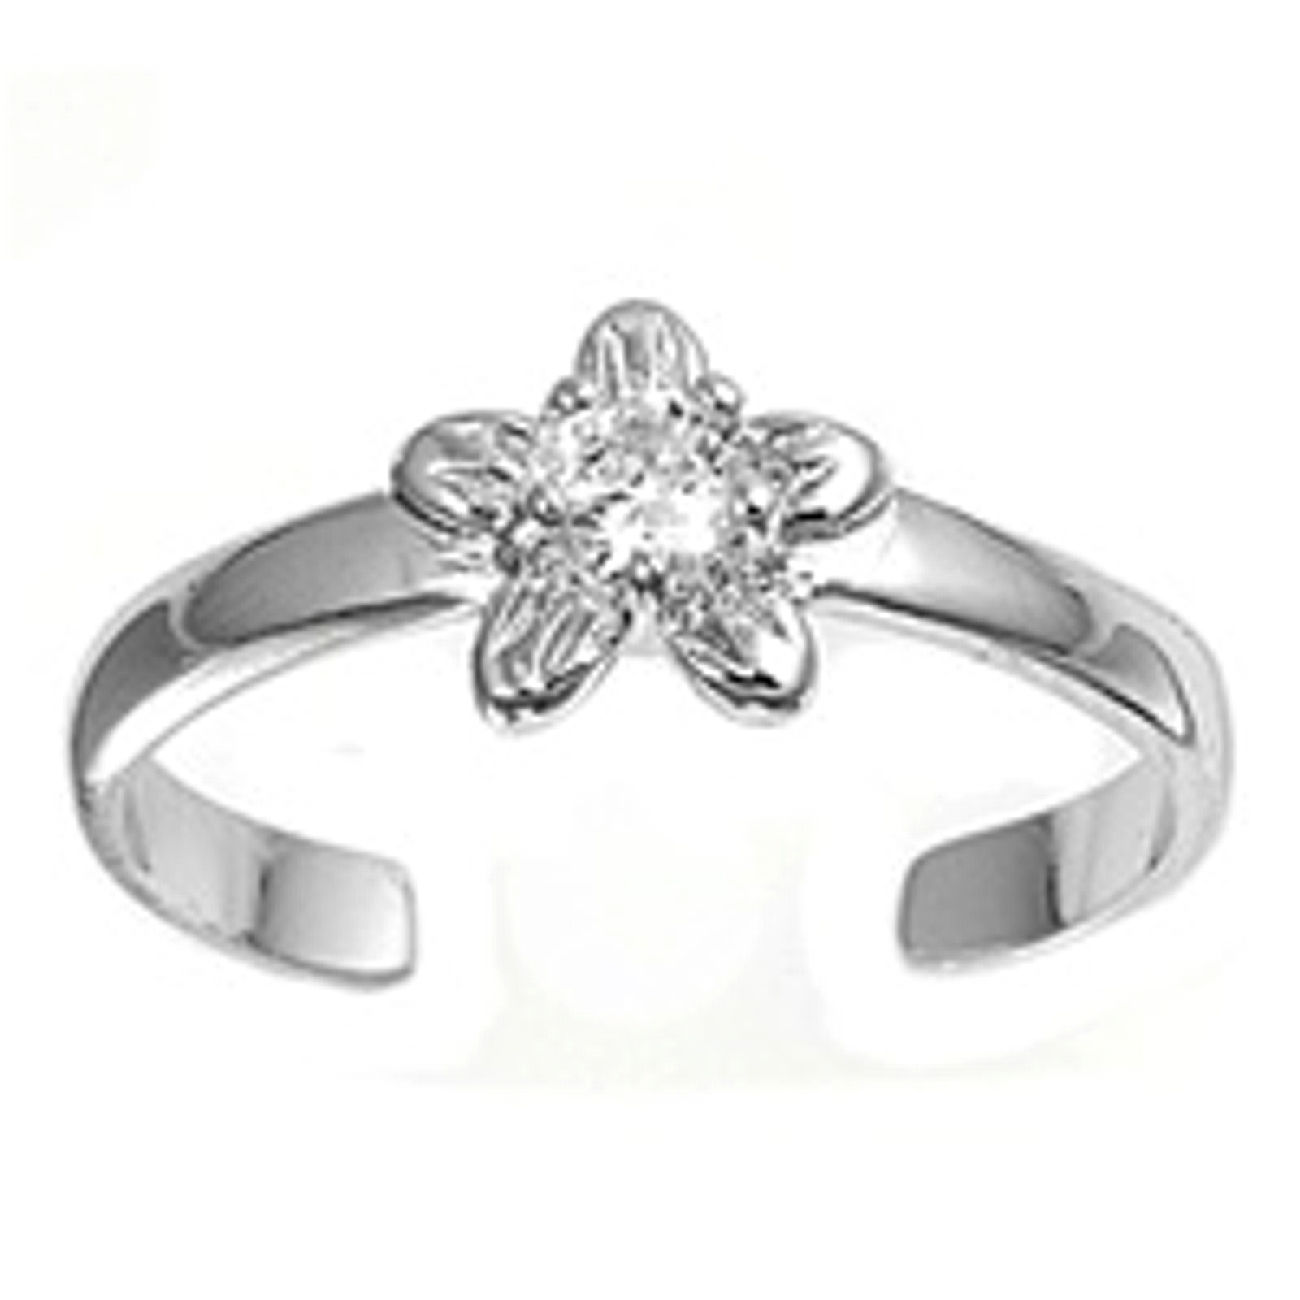 Clear Cubic Zirconia Five Petal Flower Adjustable Toe Ring